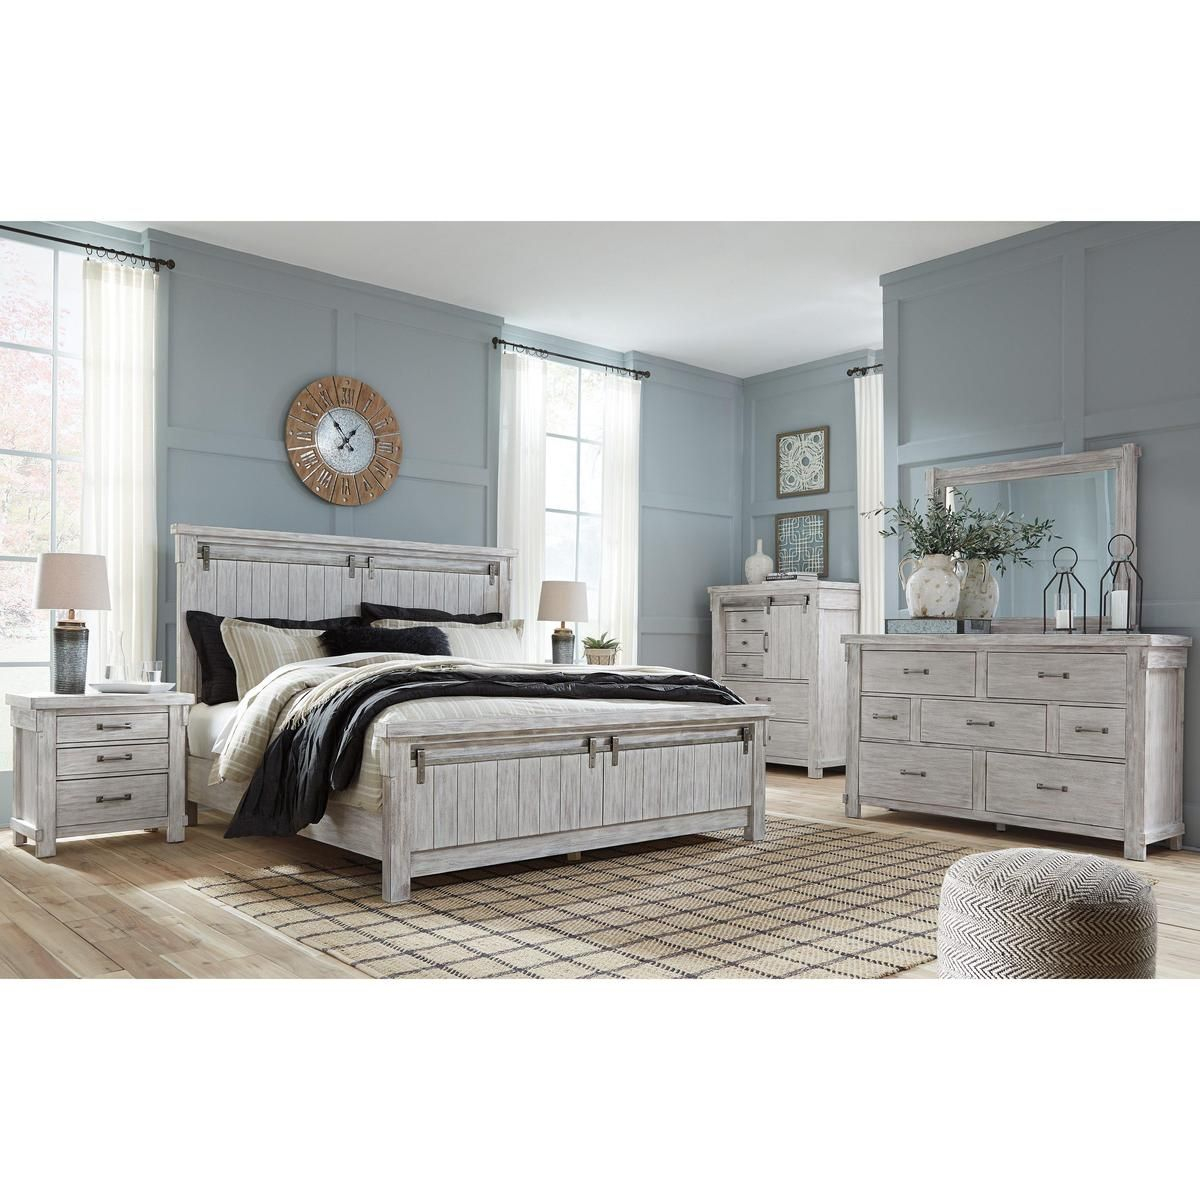 Brashland Whitewash Bedroom Set White Washed Bedroom Furniture Bedroom Set Mattress Furniture